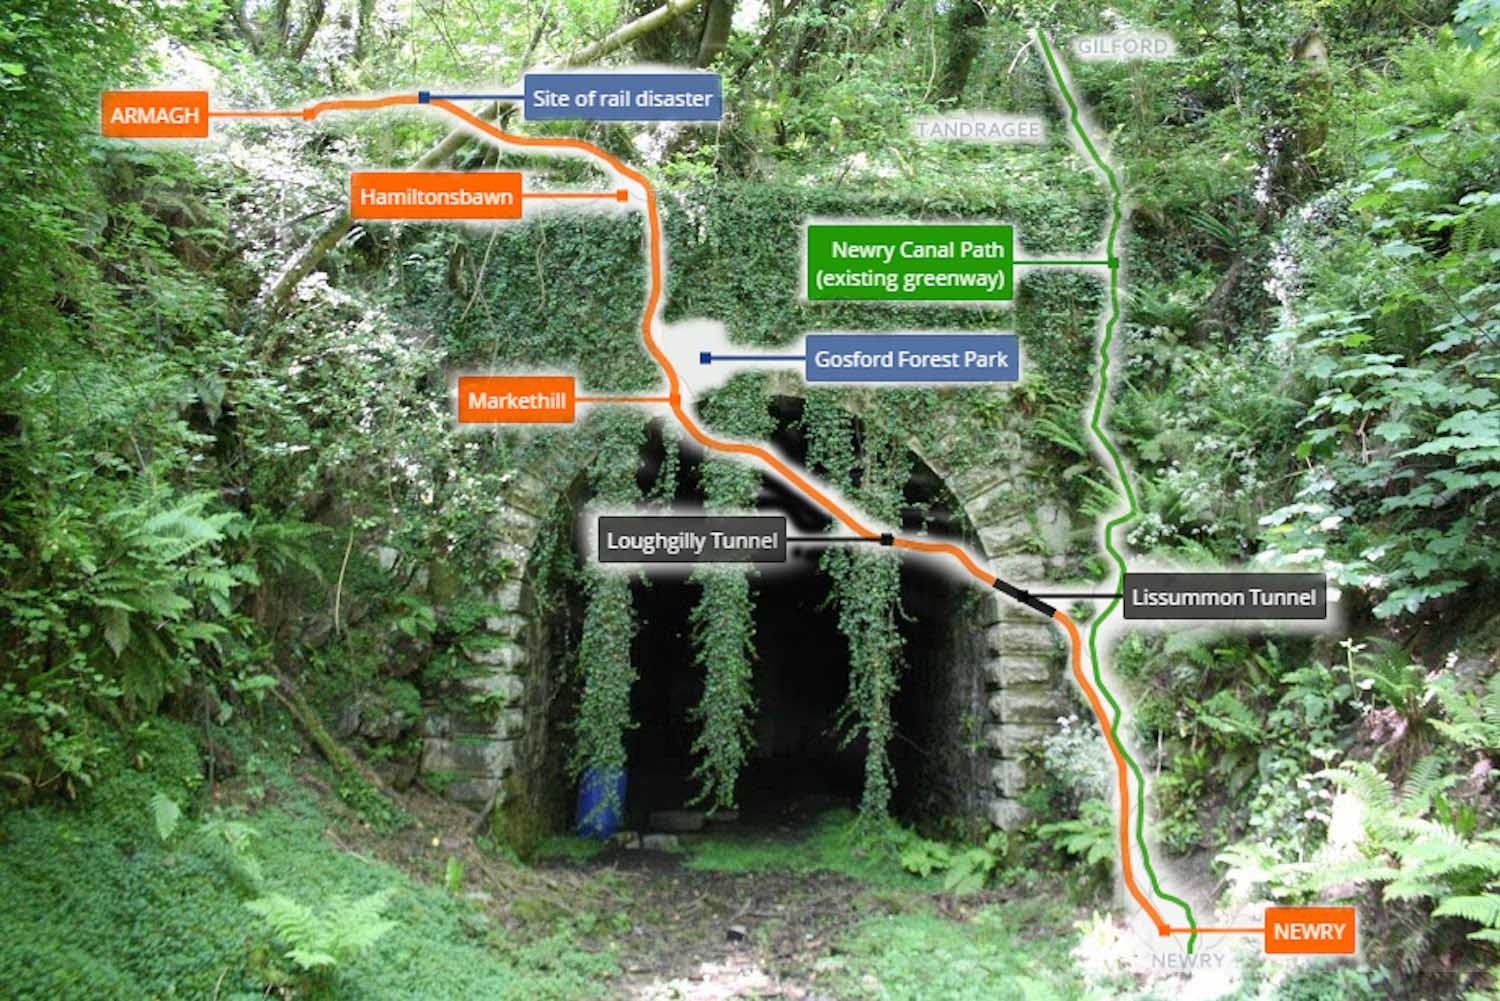 Armagh to Newry Greenway